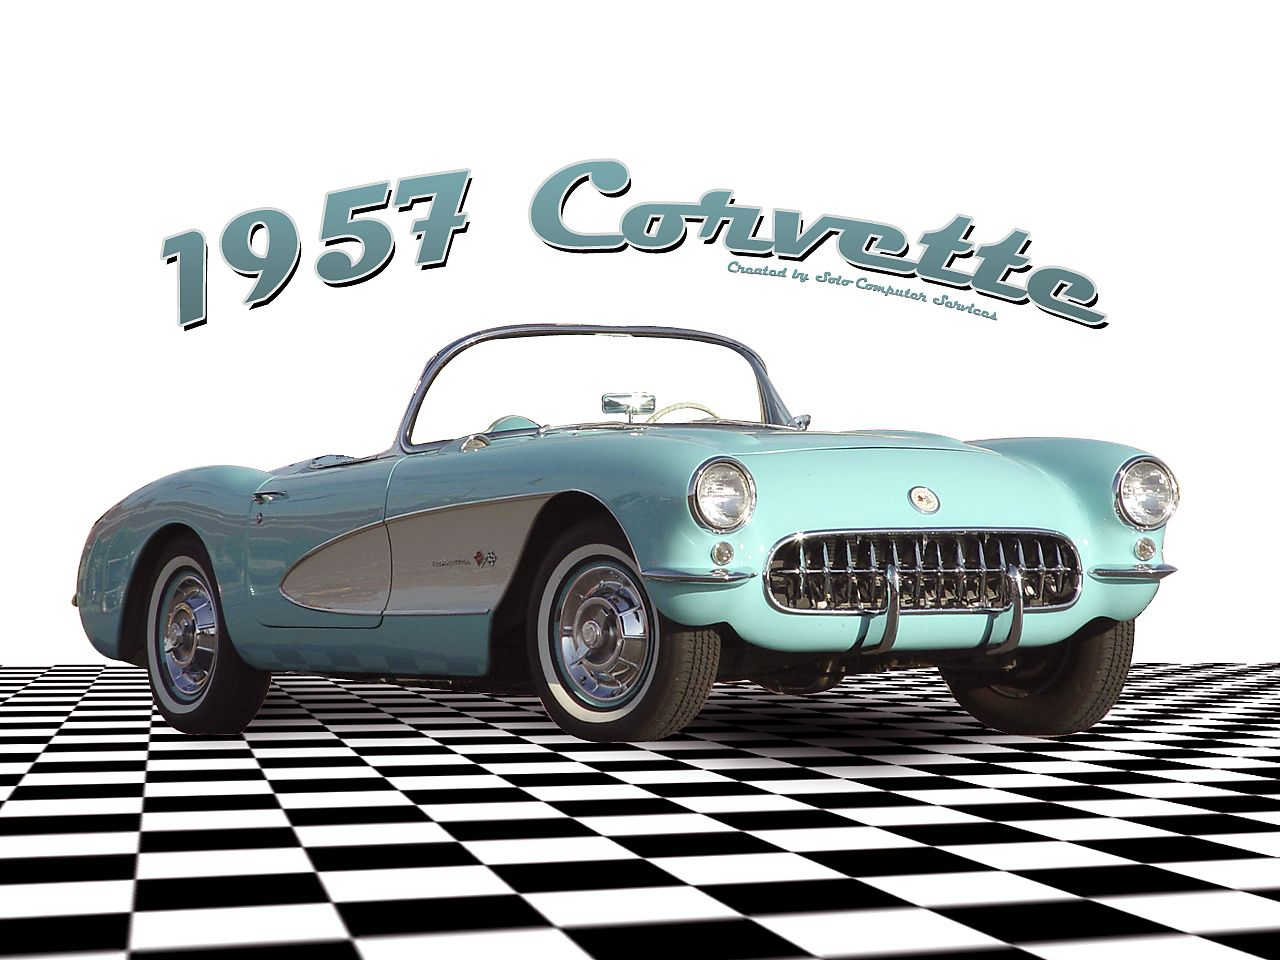 1957 Corvette - the best car ever invented! | Corvette | Pinterest ...